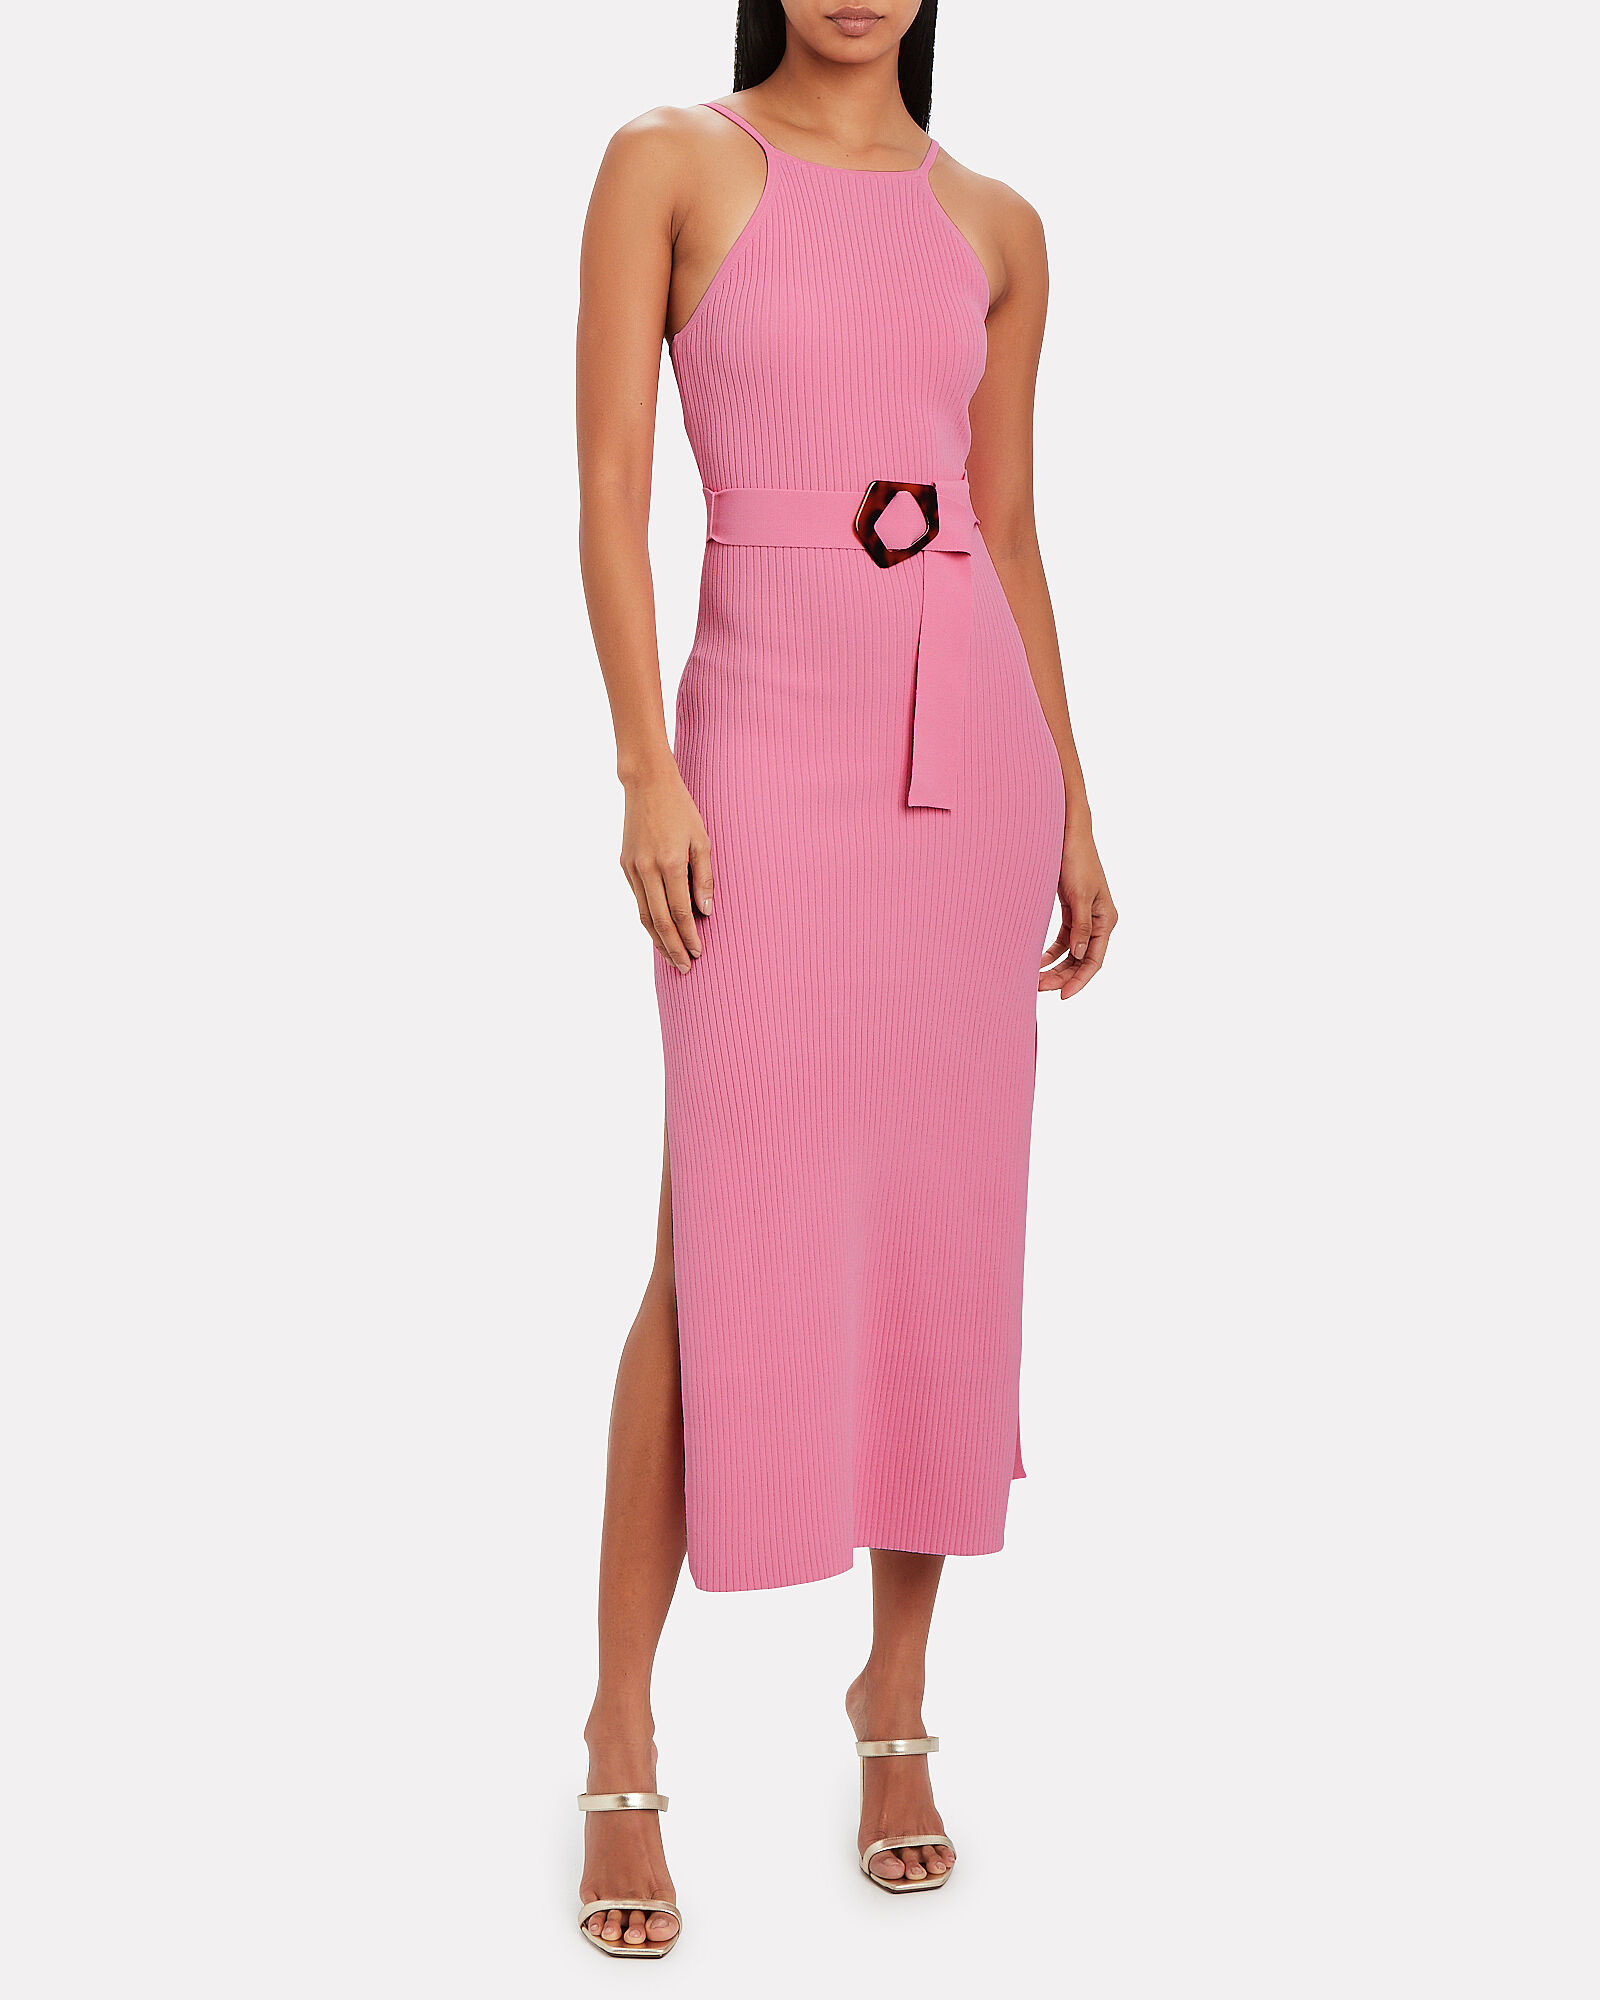 Lily Knit Midi Dress, NEON PINK, hi-res